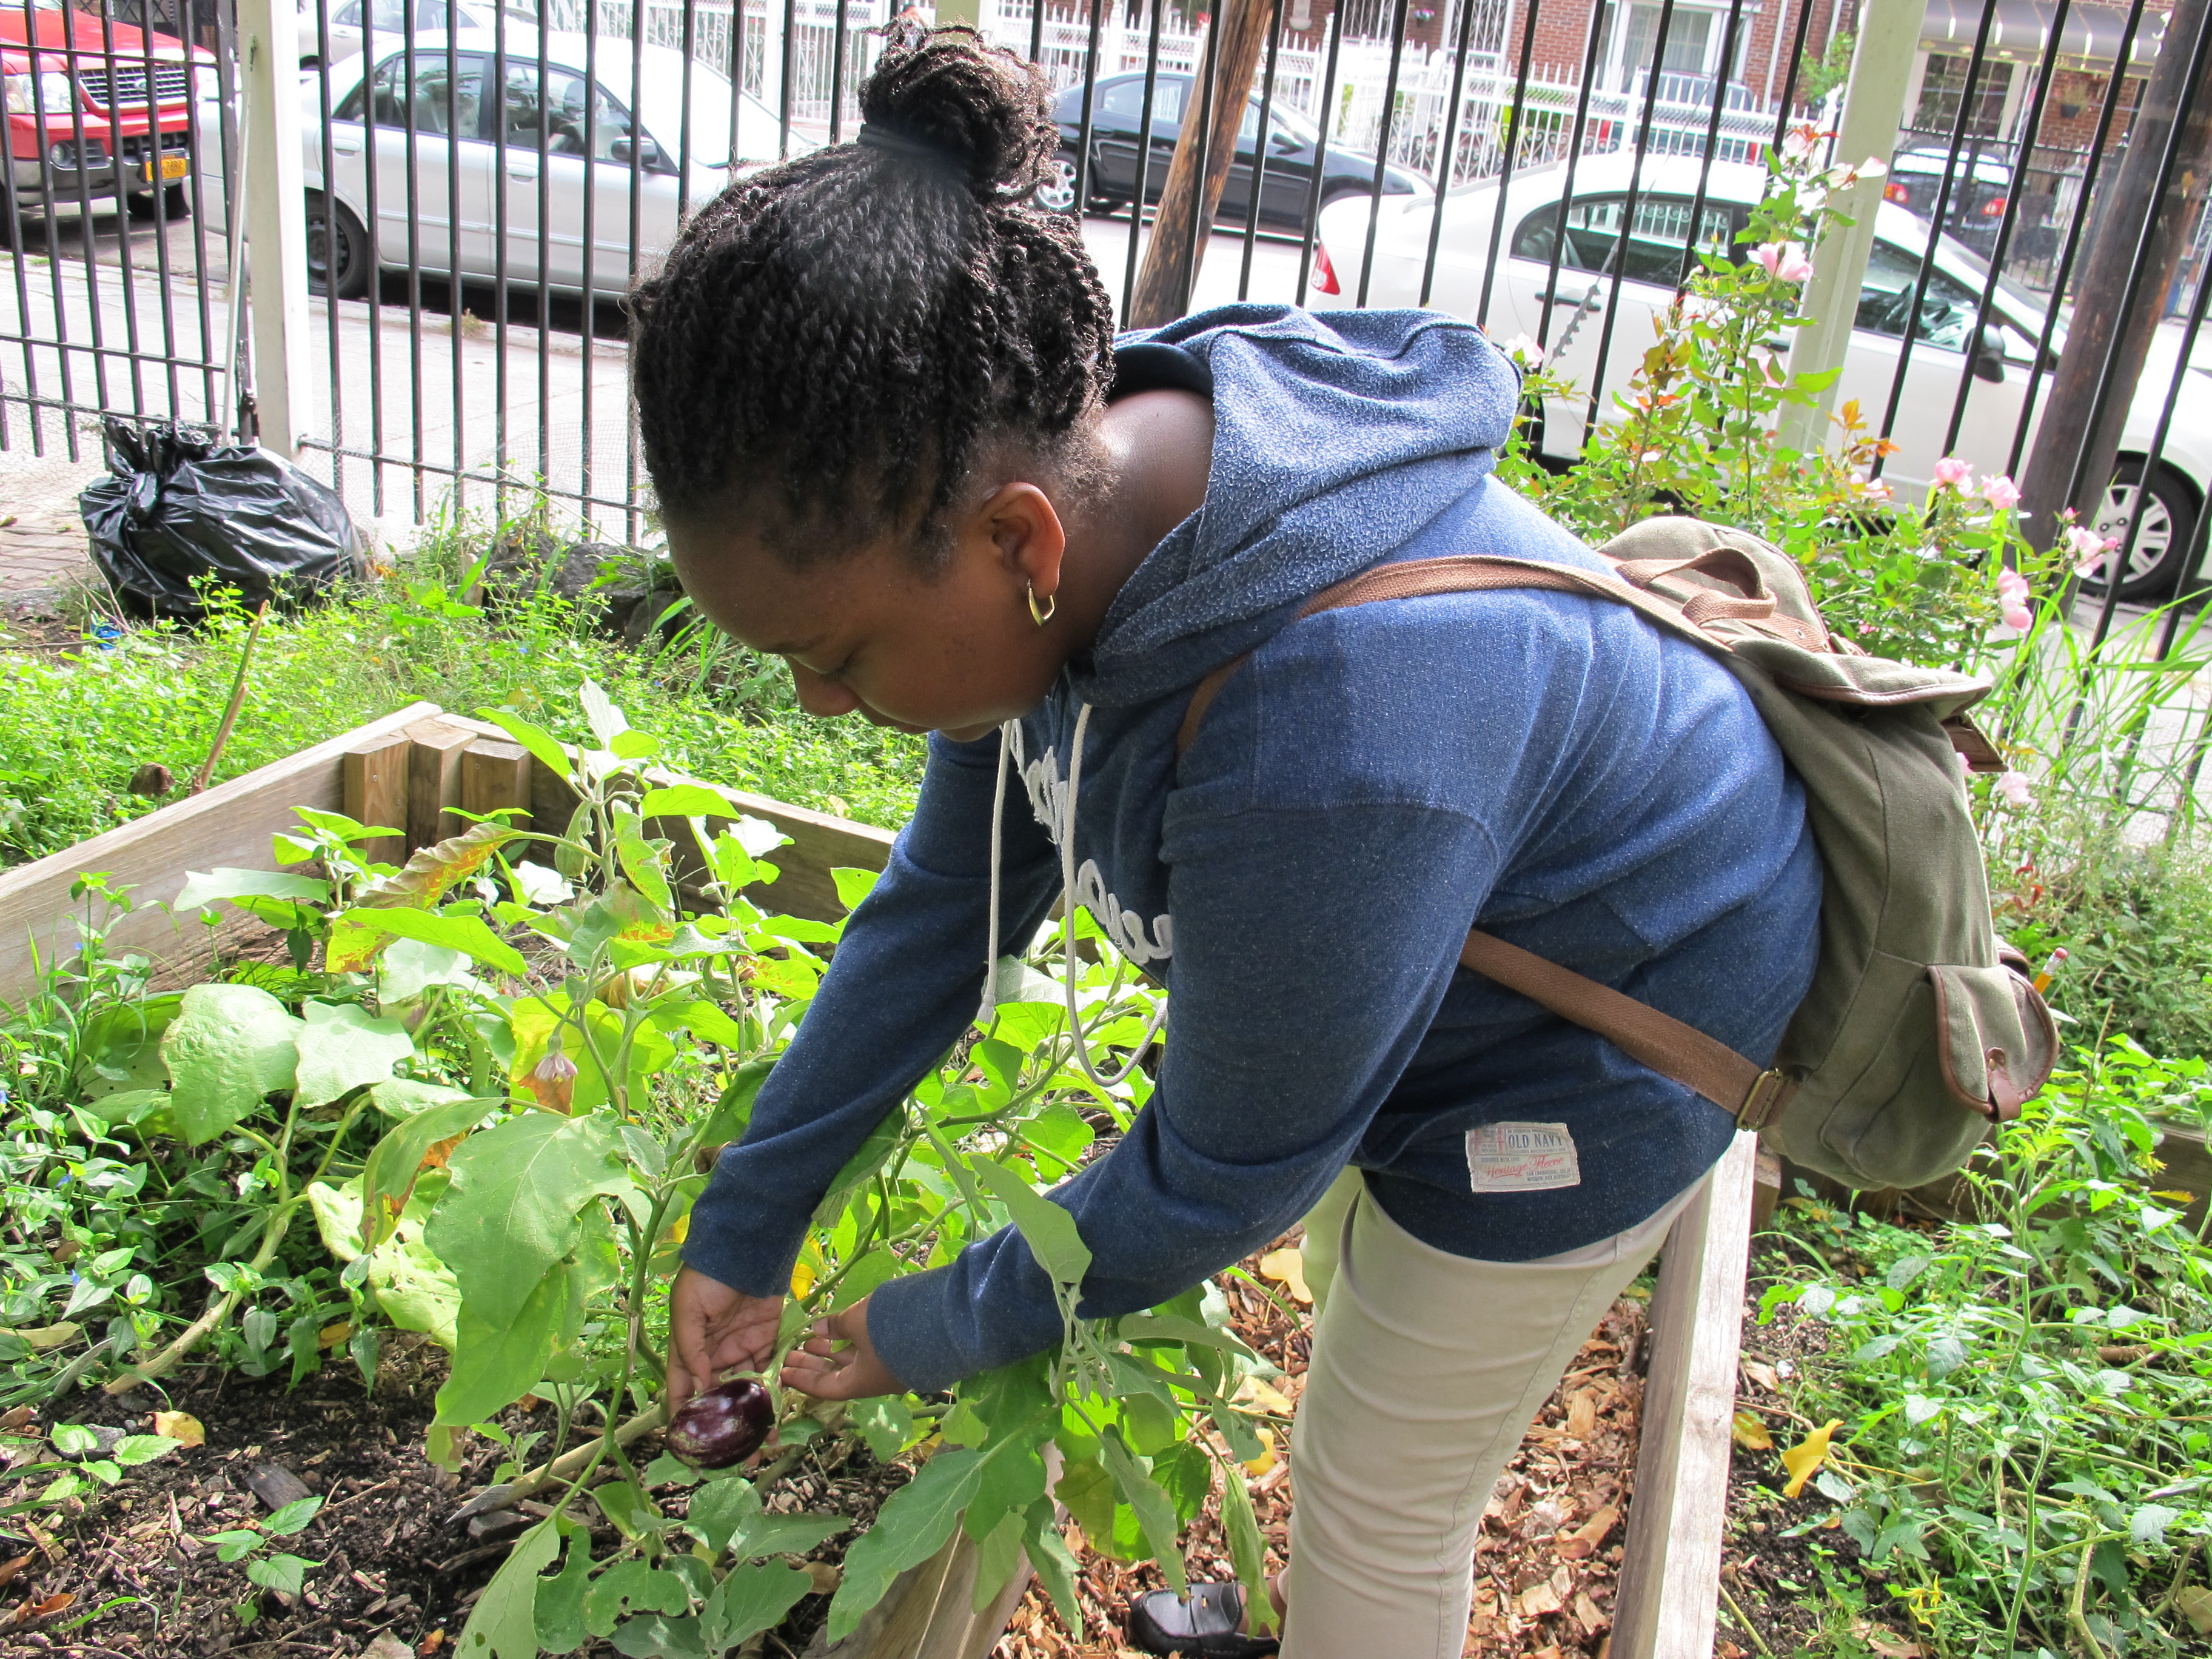 Jada Young, 12, shows off one of the eggplants she is growing in her box at Padre Plaza Community Garden.